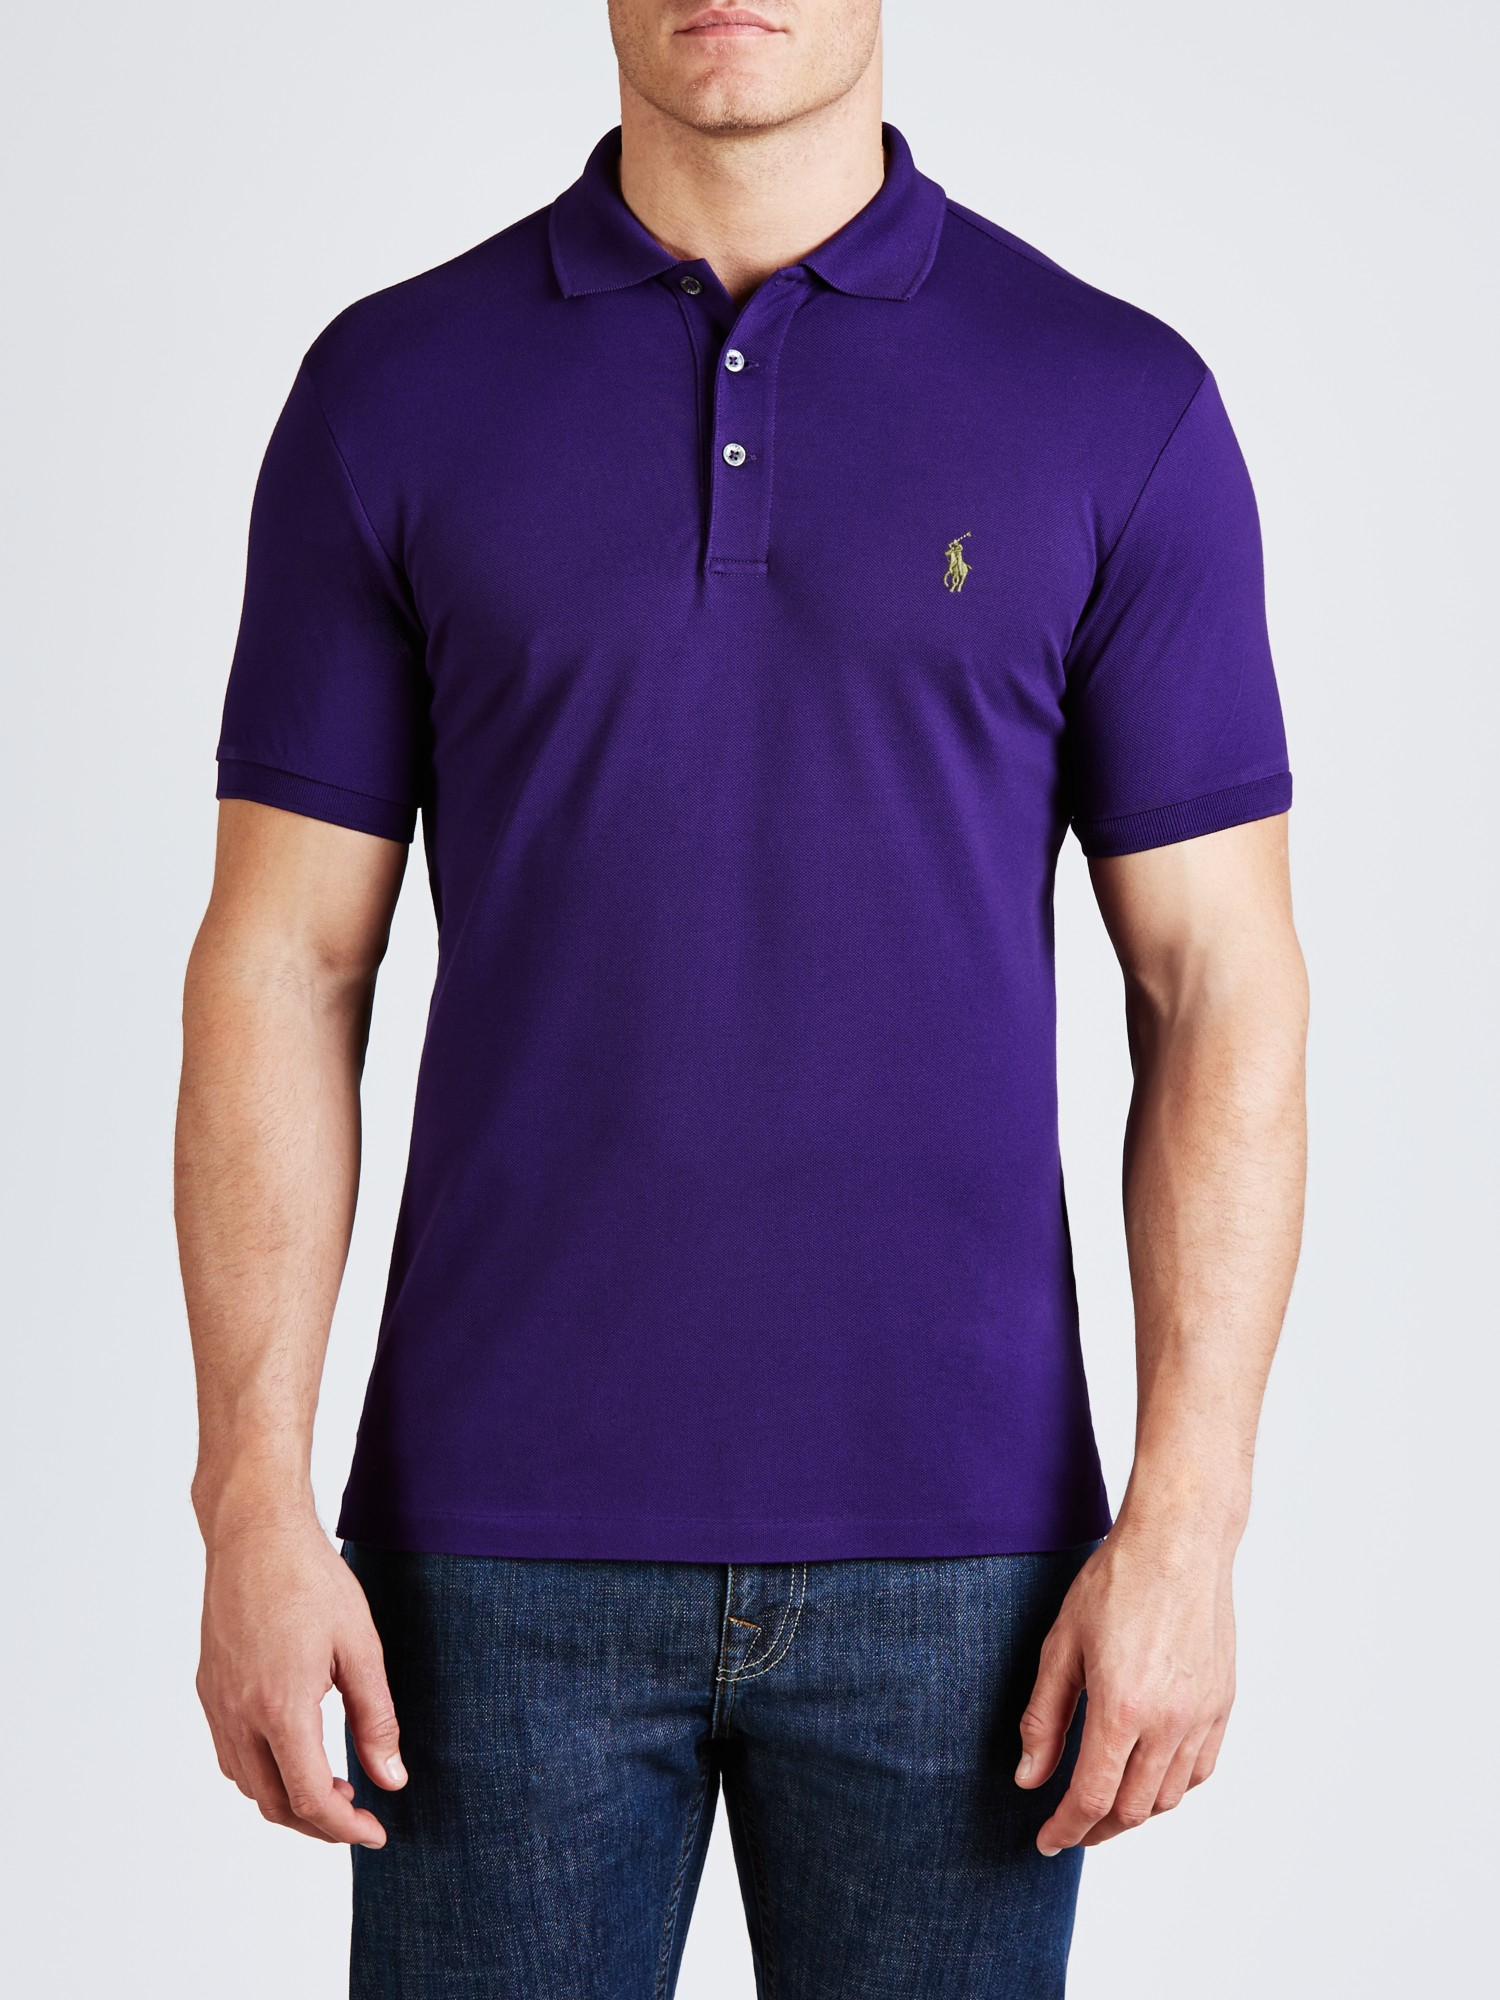 Polo ralph lauren slim fit polo shirt in purple for men lyst for Mens slim fit polo shirt